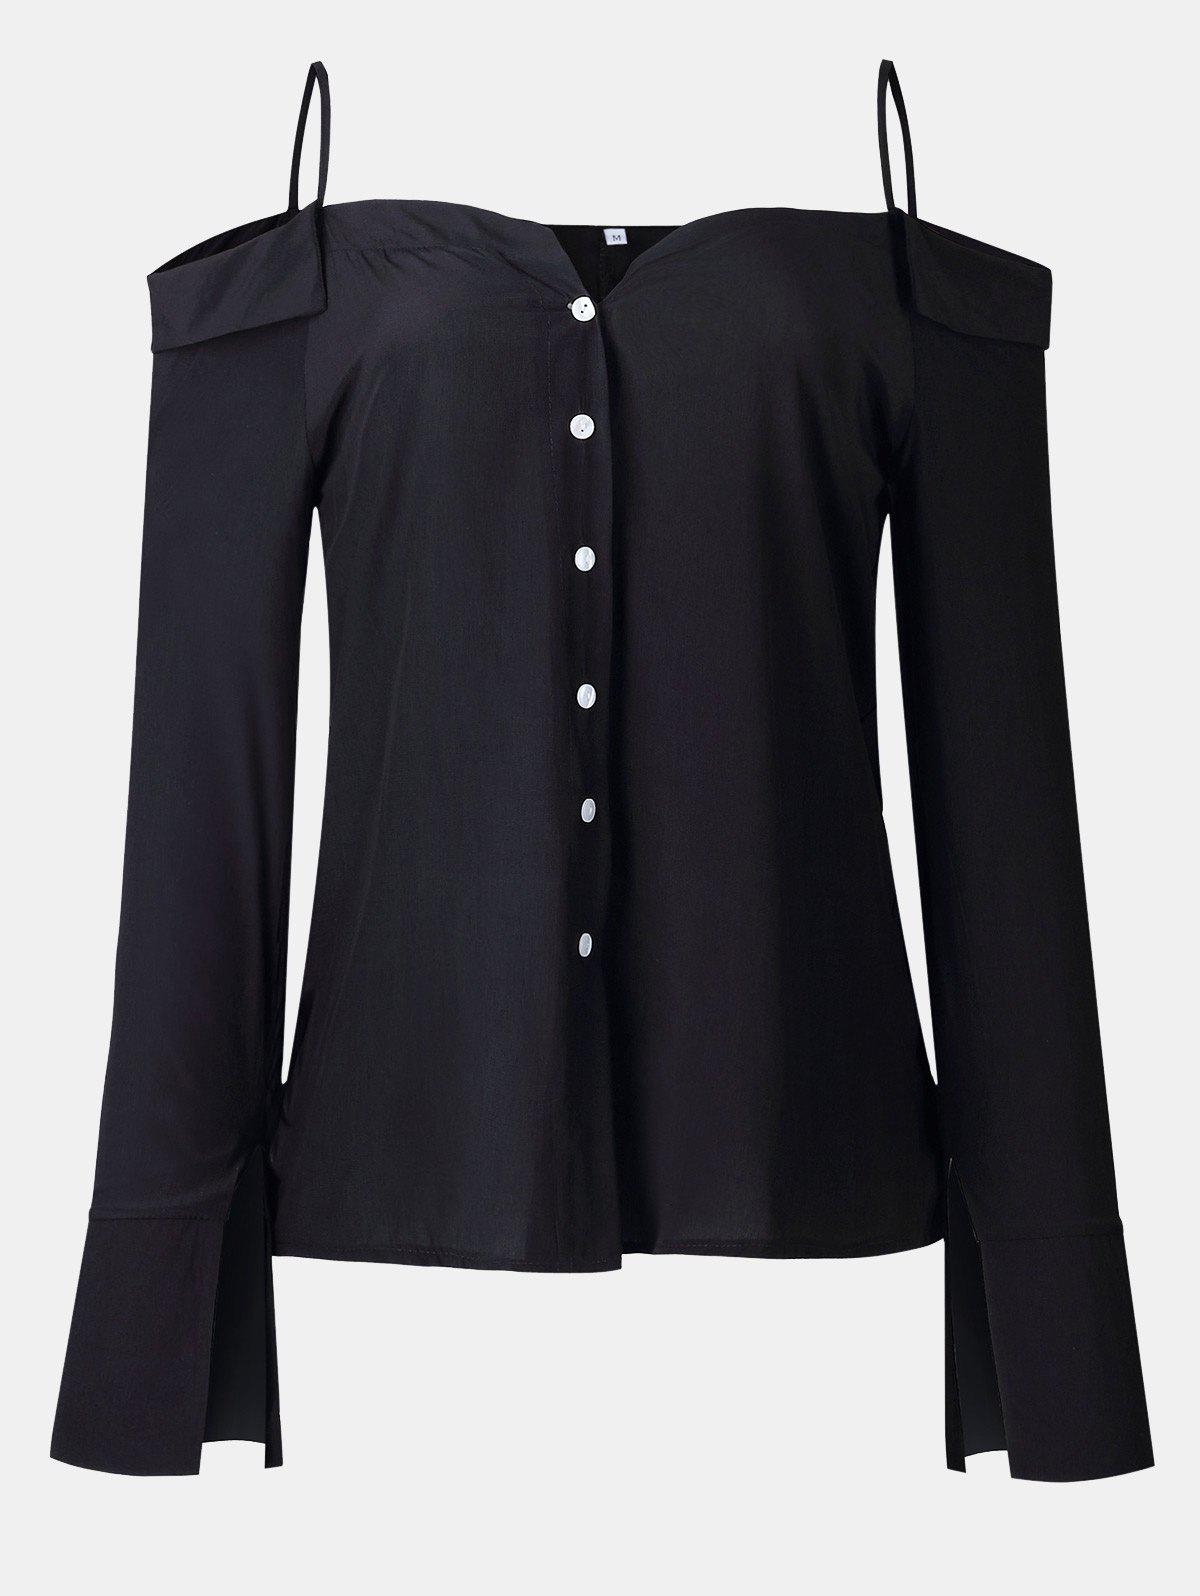 Women's Solid Color Dew Shoulder Long Sleeved Button-down Tops - BLACK L